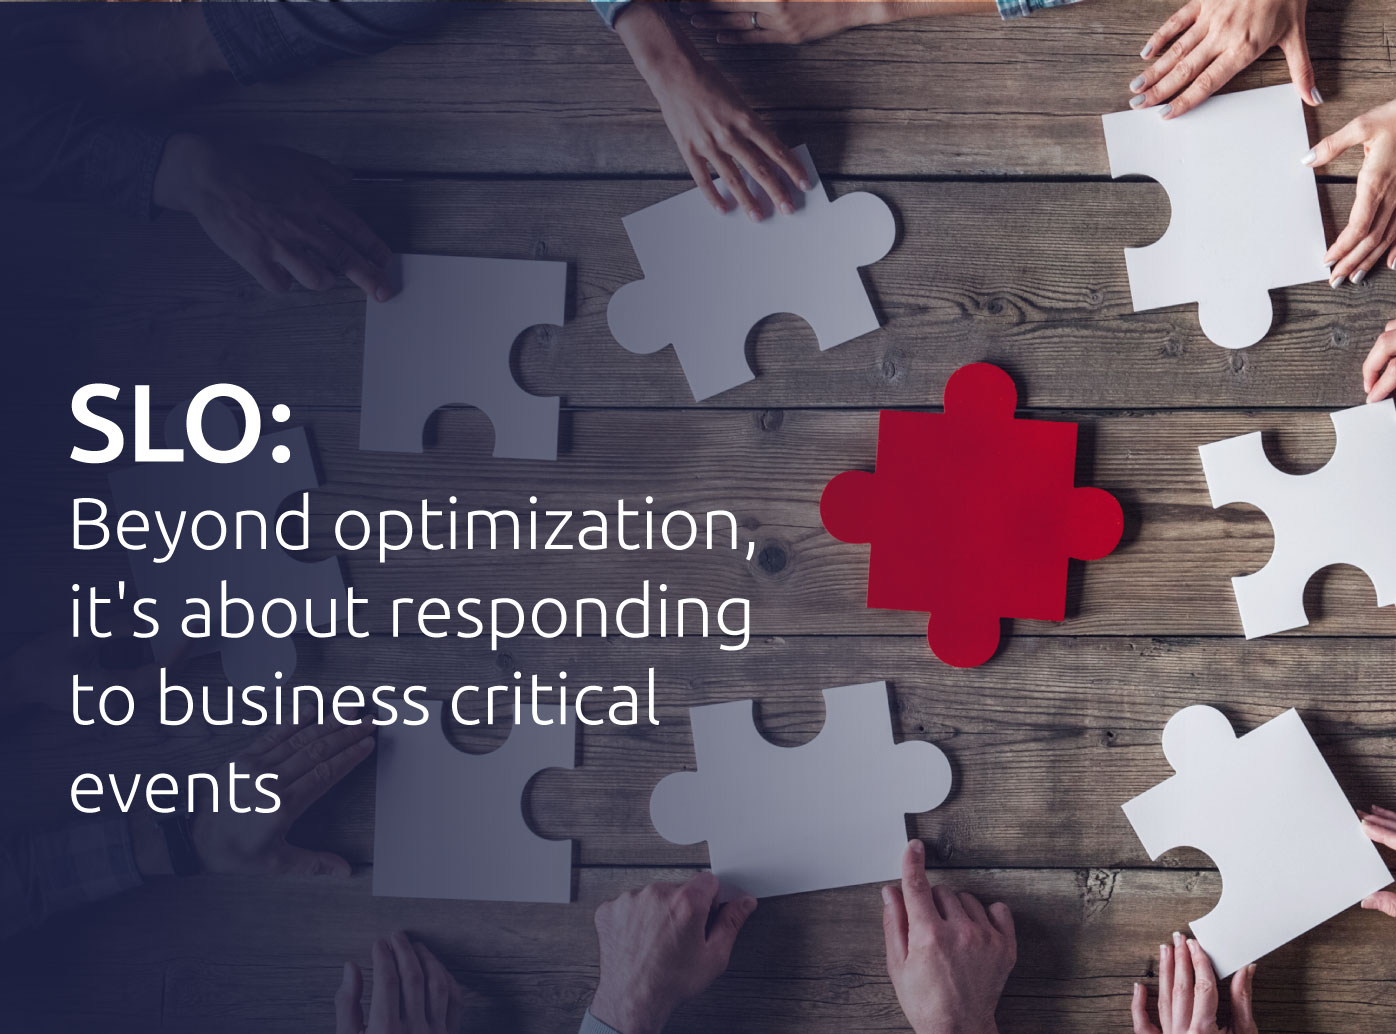 SLO: beyond optimization, it's about responding to business critical events